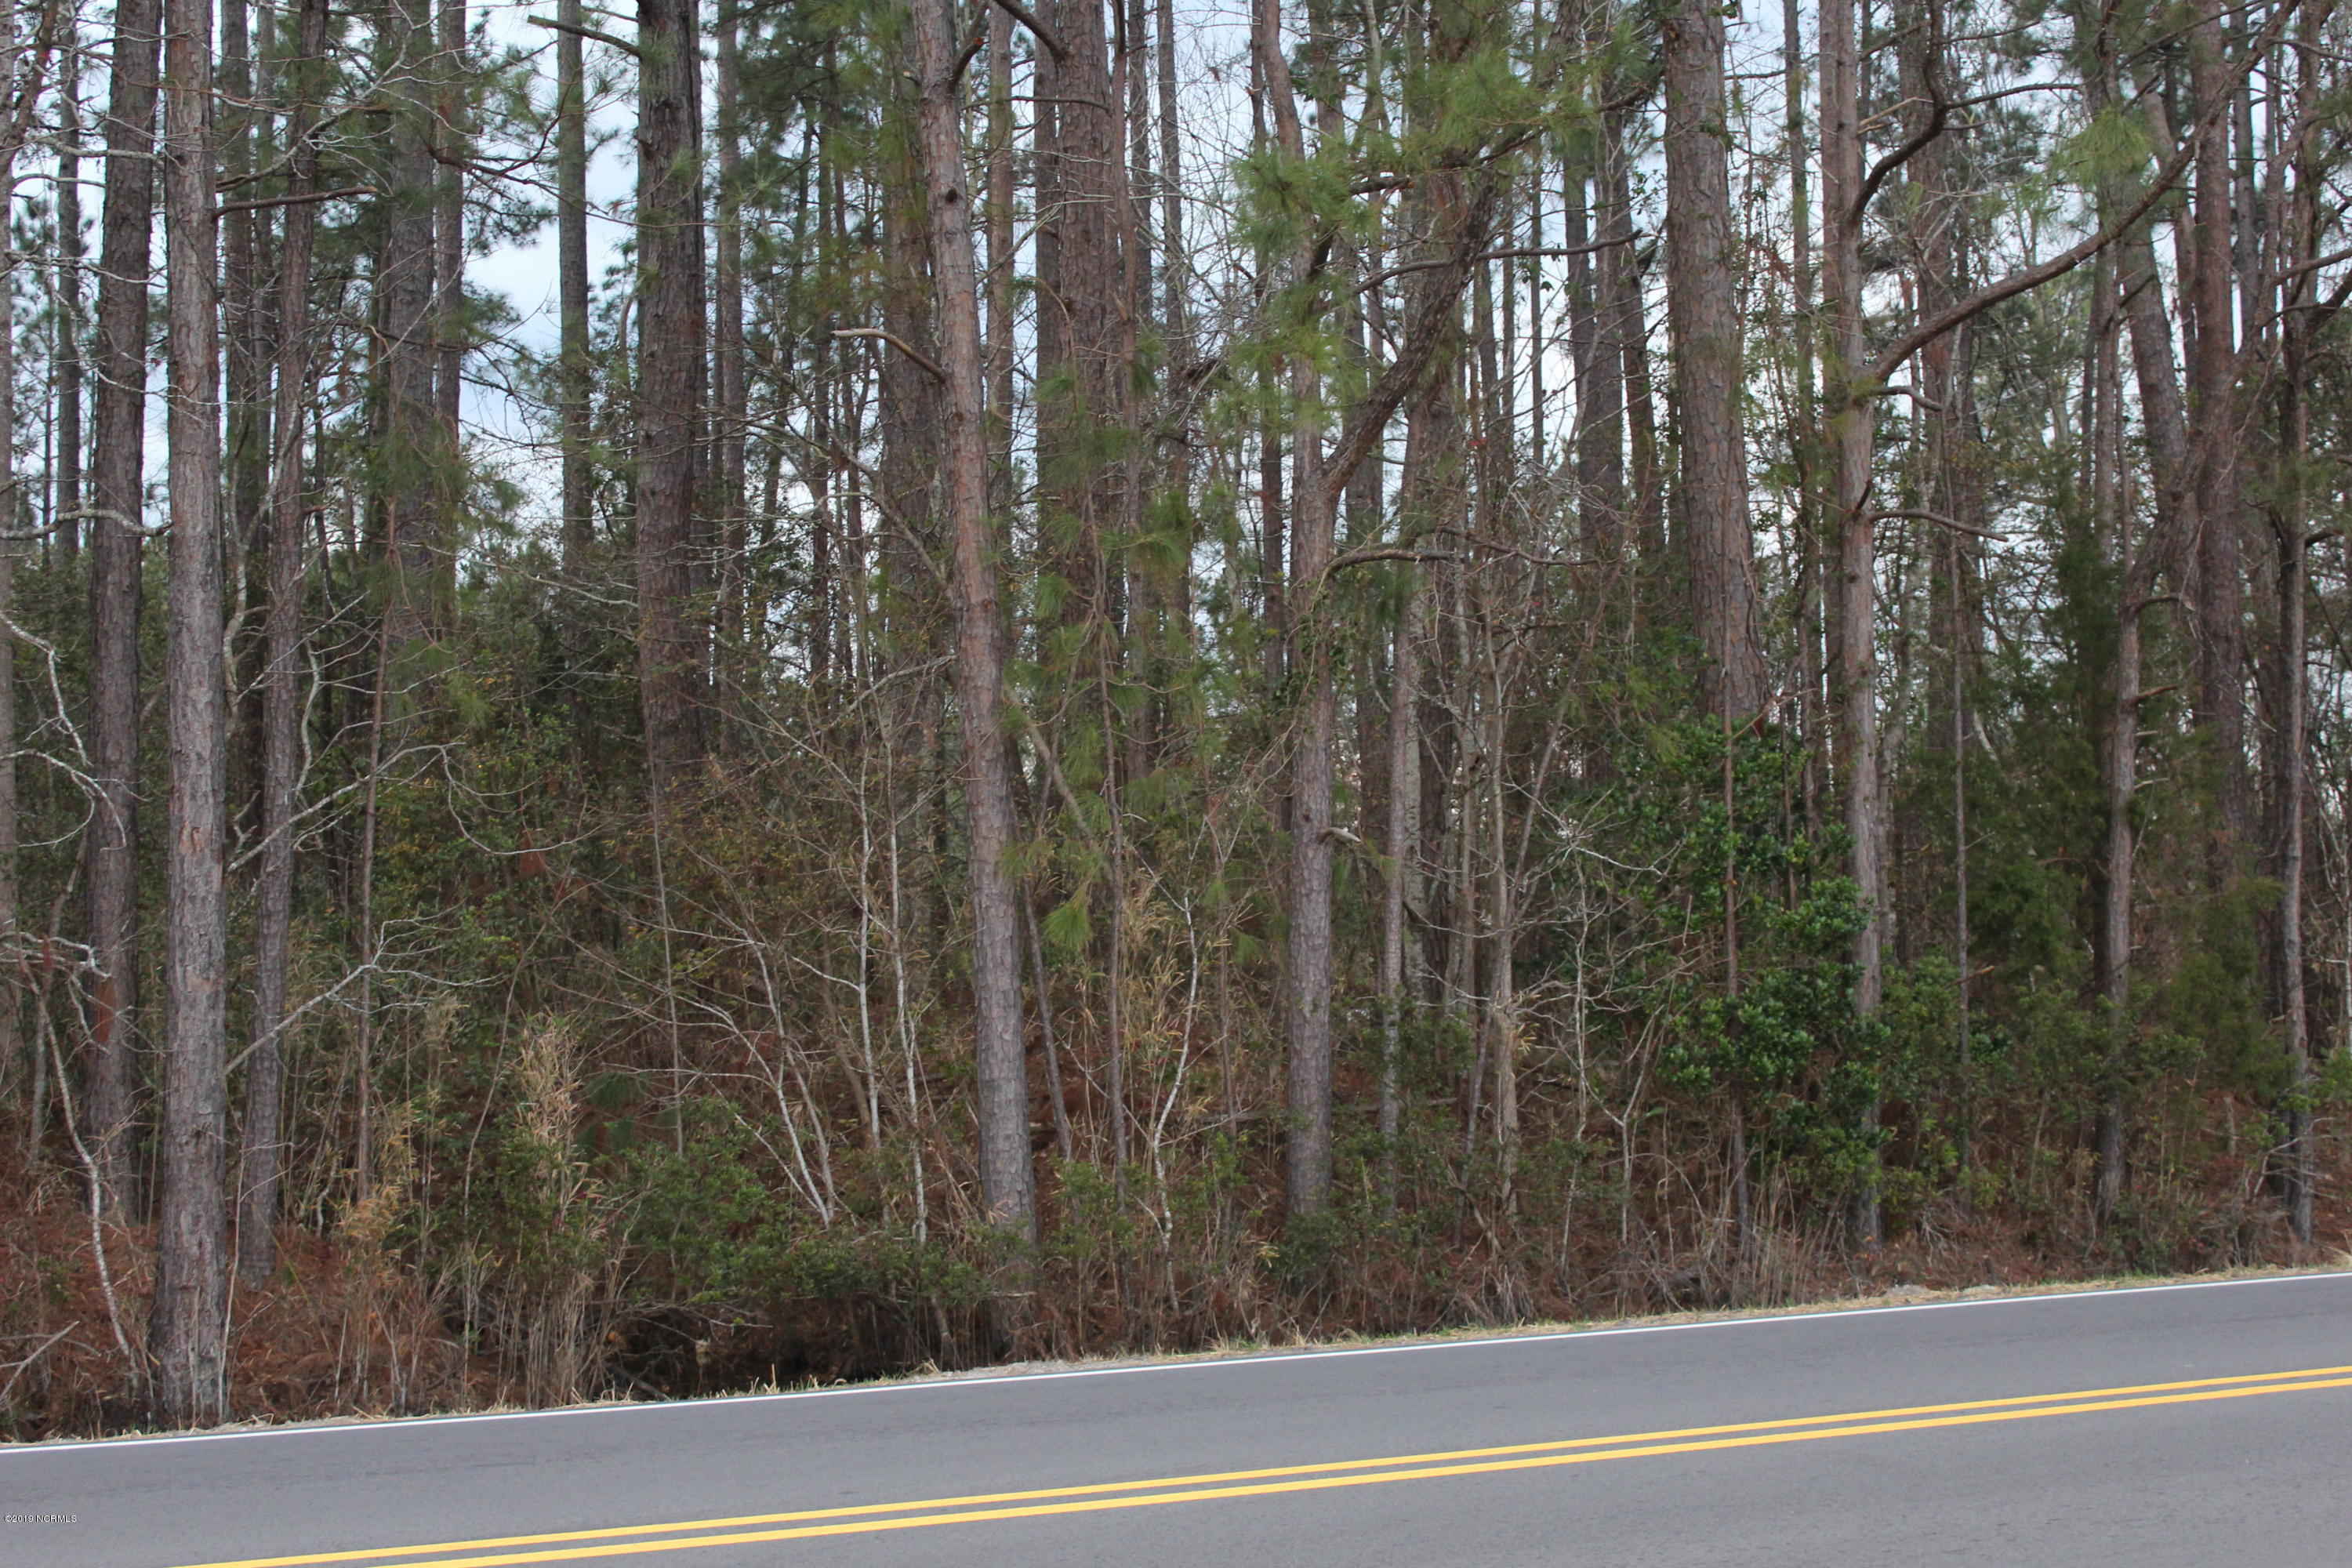 125 Mccotter Boulevard, Havelock, North Carolina 28532, ,2-4 units multi-family,For sale,Mccotter,100149805